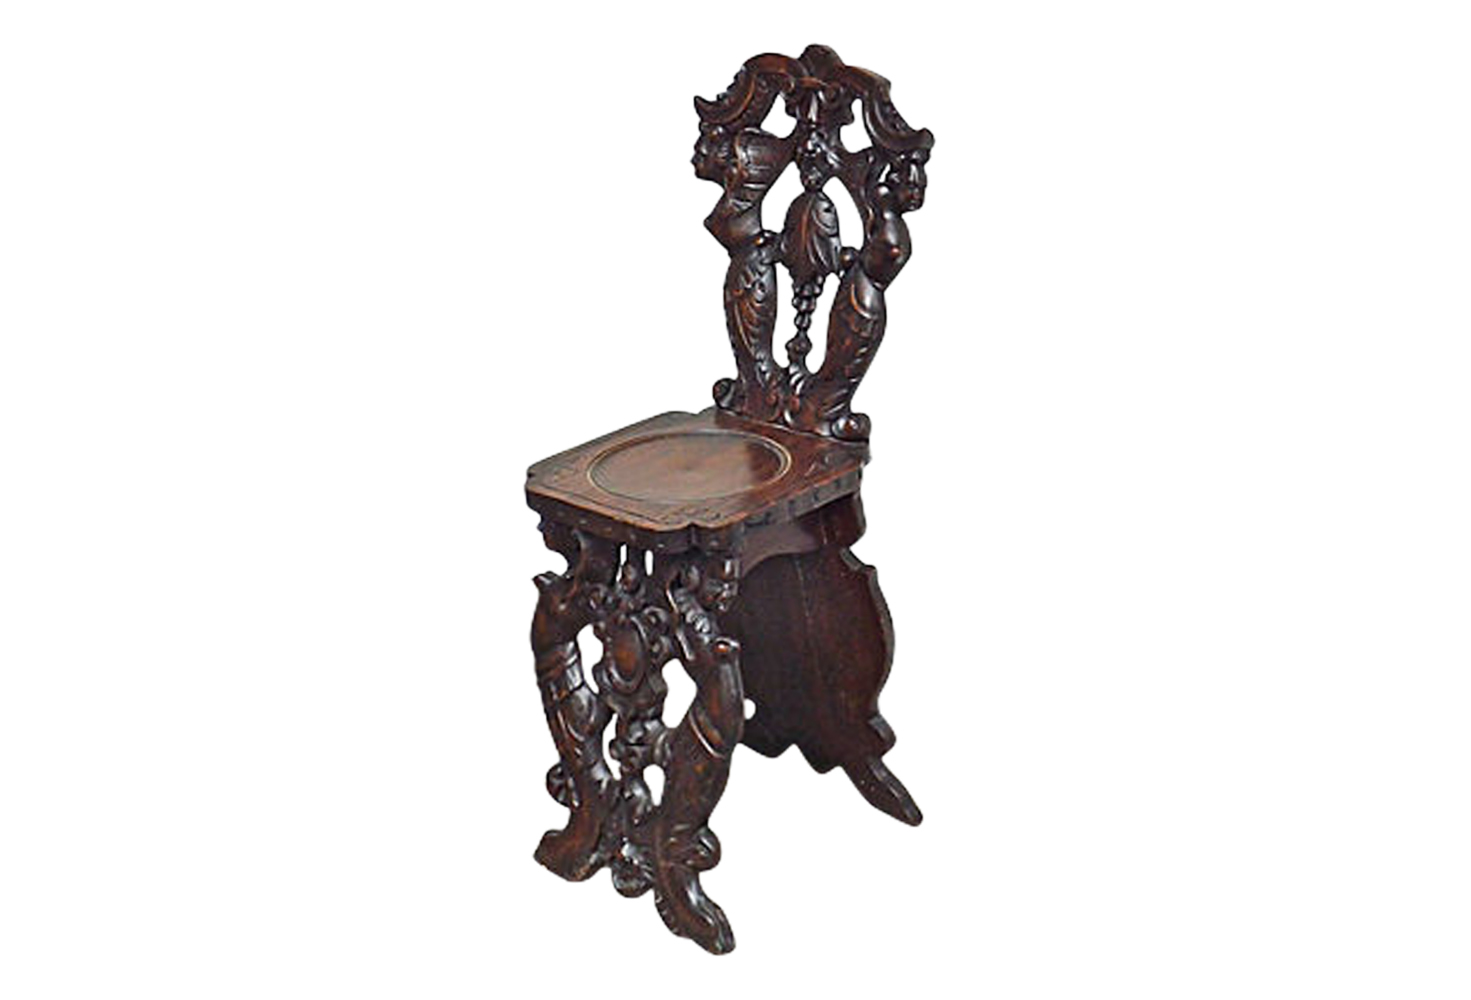 Antique Carved Gothic Revival Hall Chair - Antique Carved Gothic Revival Hall Chair Omero Home